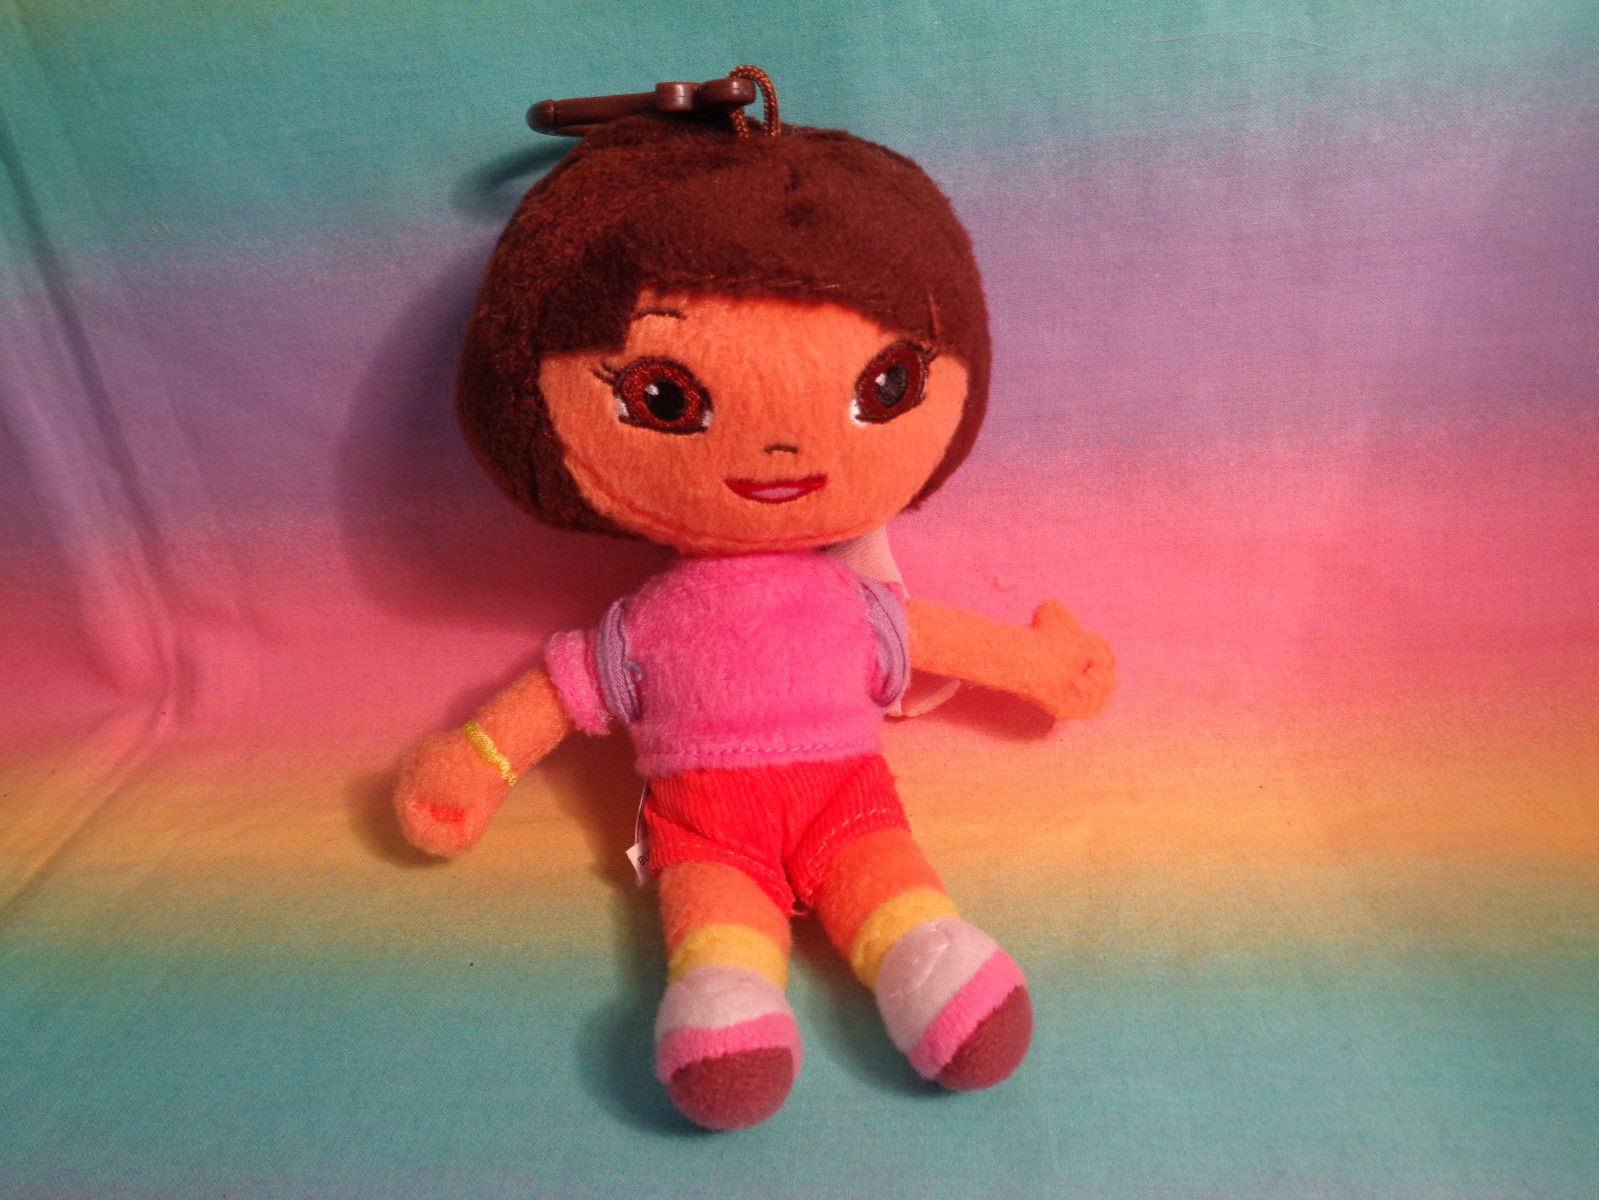 Nickelodeon Dora The Explorer Mini Plush Doll w/ Backpack Clip - AS IS